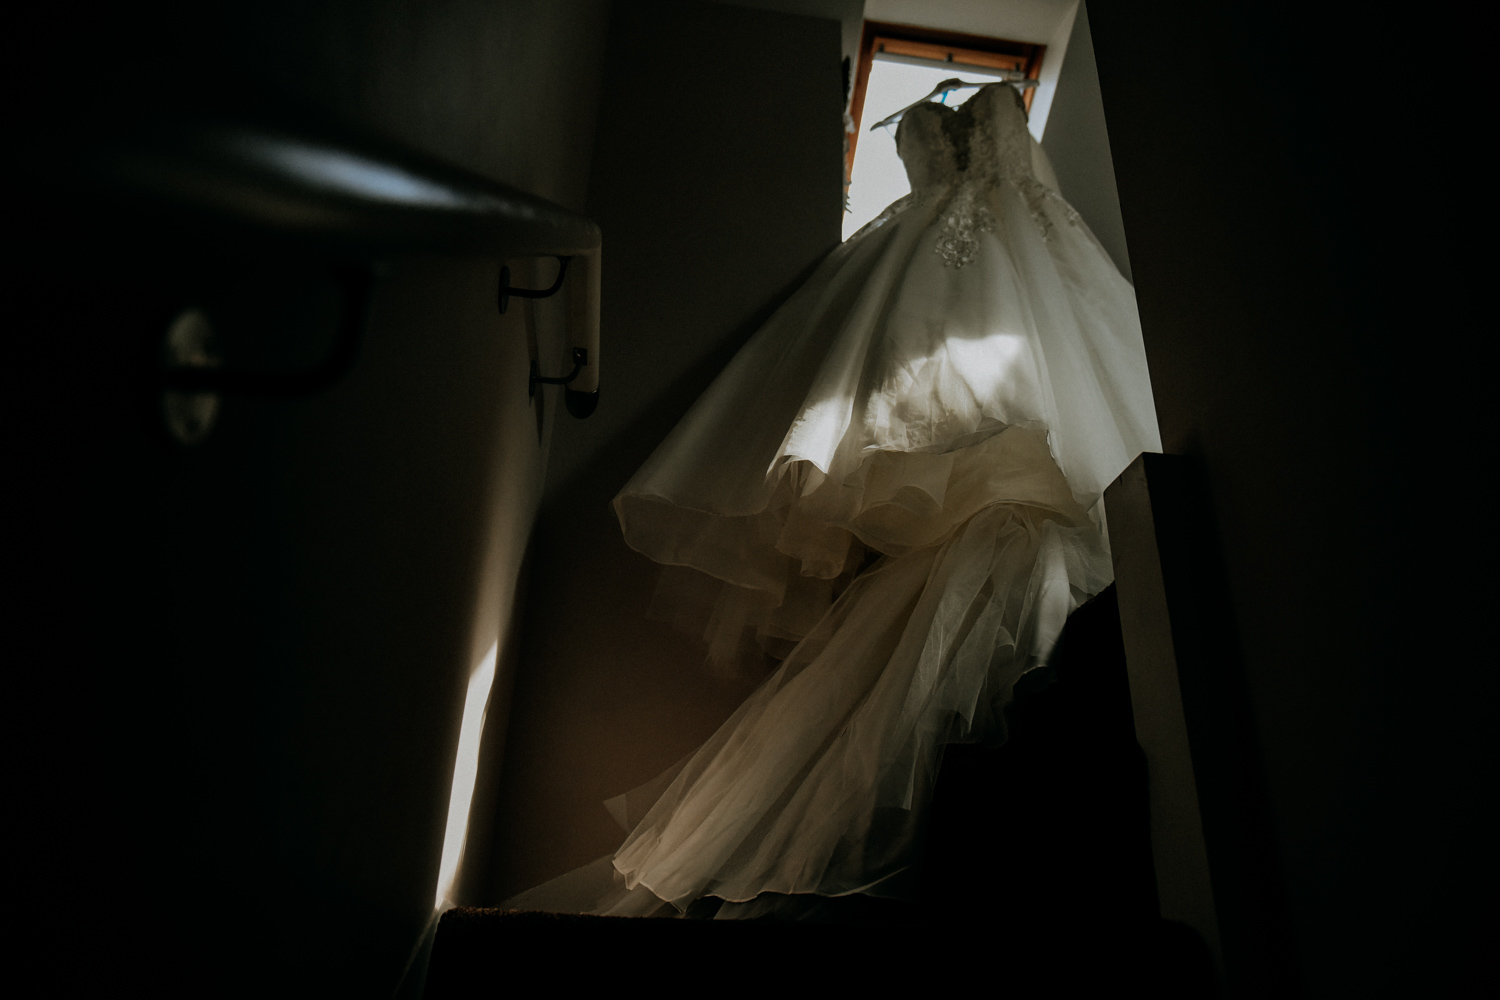 Window light on a wedding dress